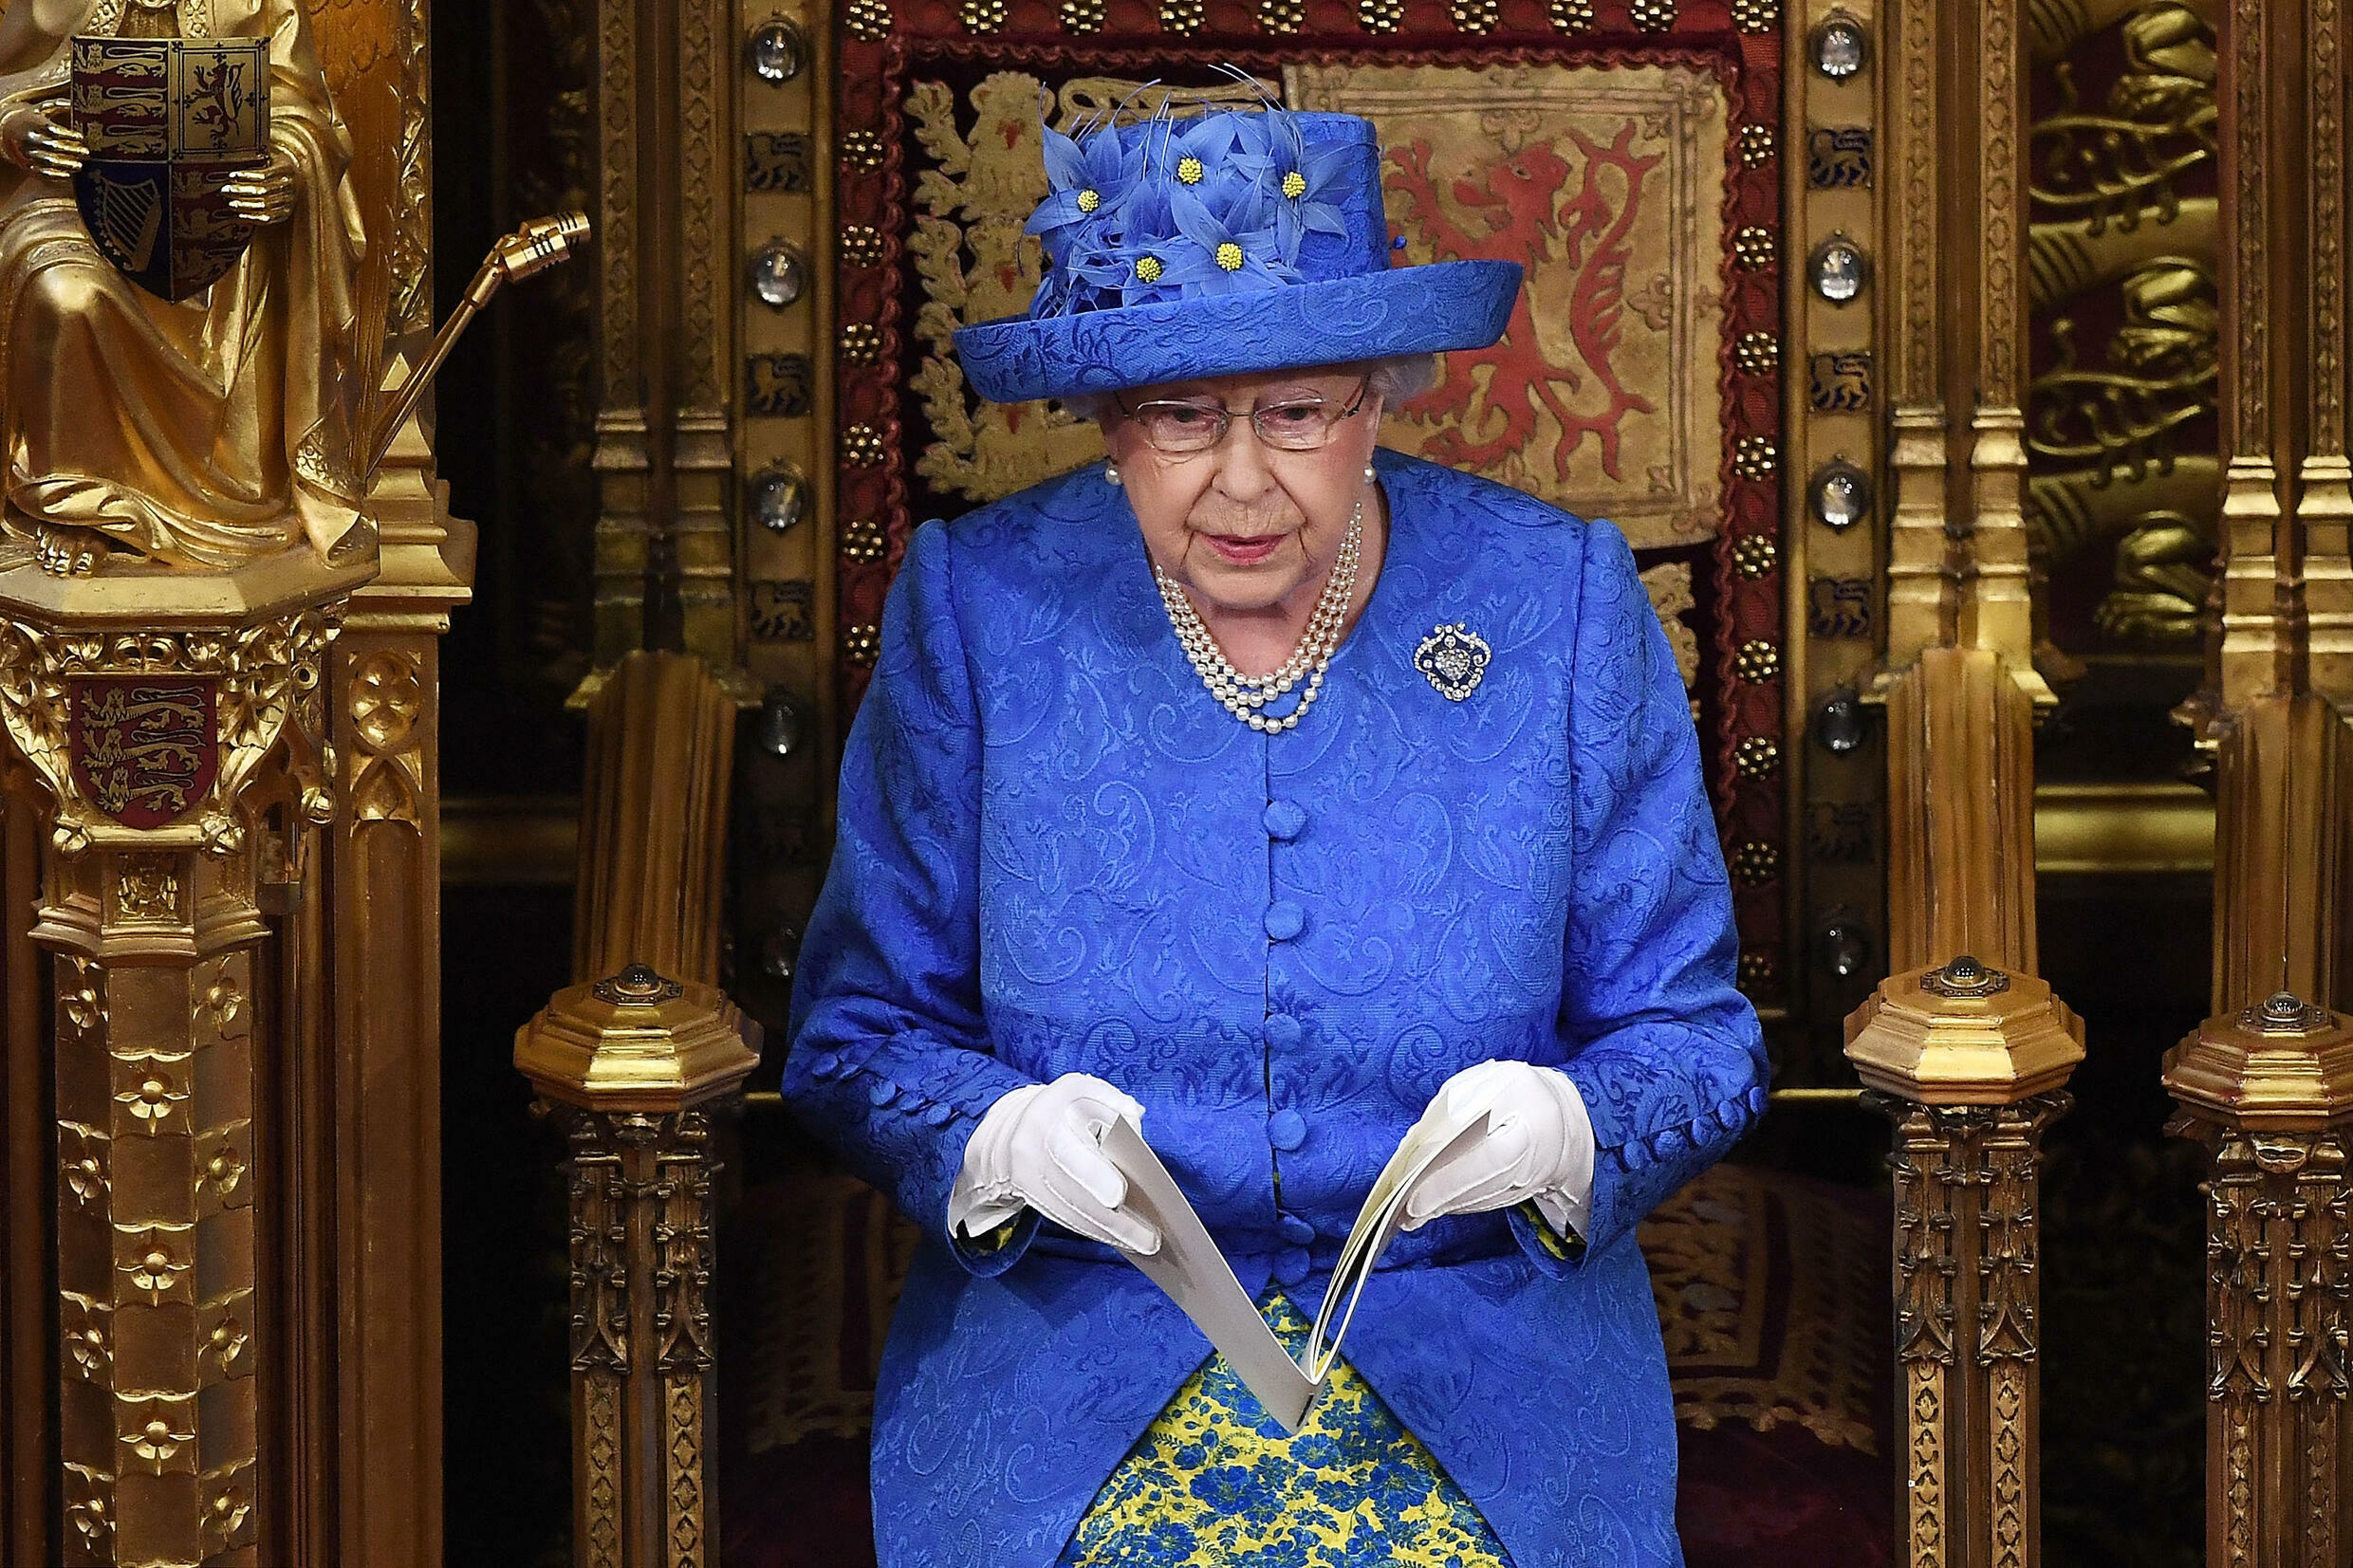 In her dress and hat, Queen Elizabeth II sent a strong Brexit signal to Parliament in June 2017.